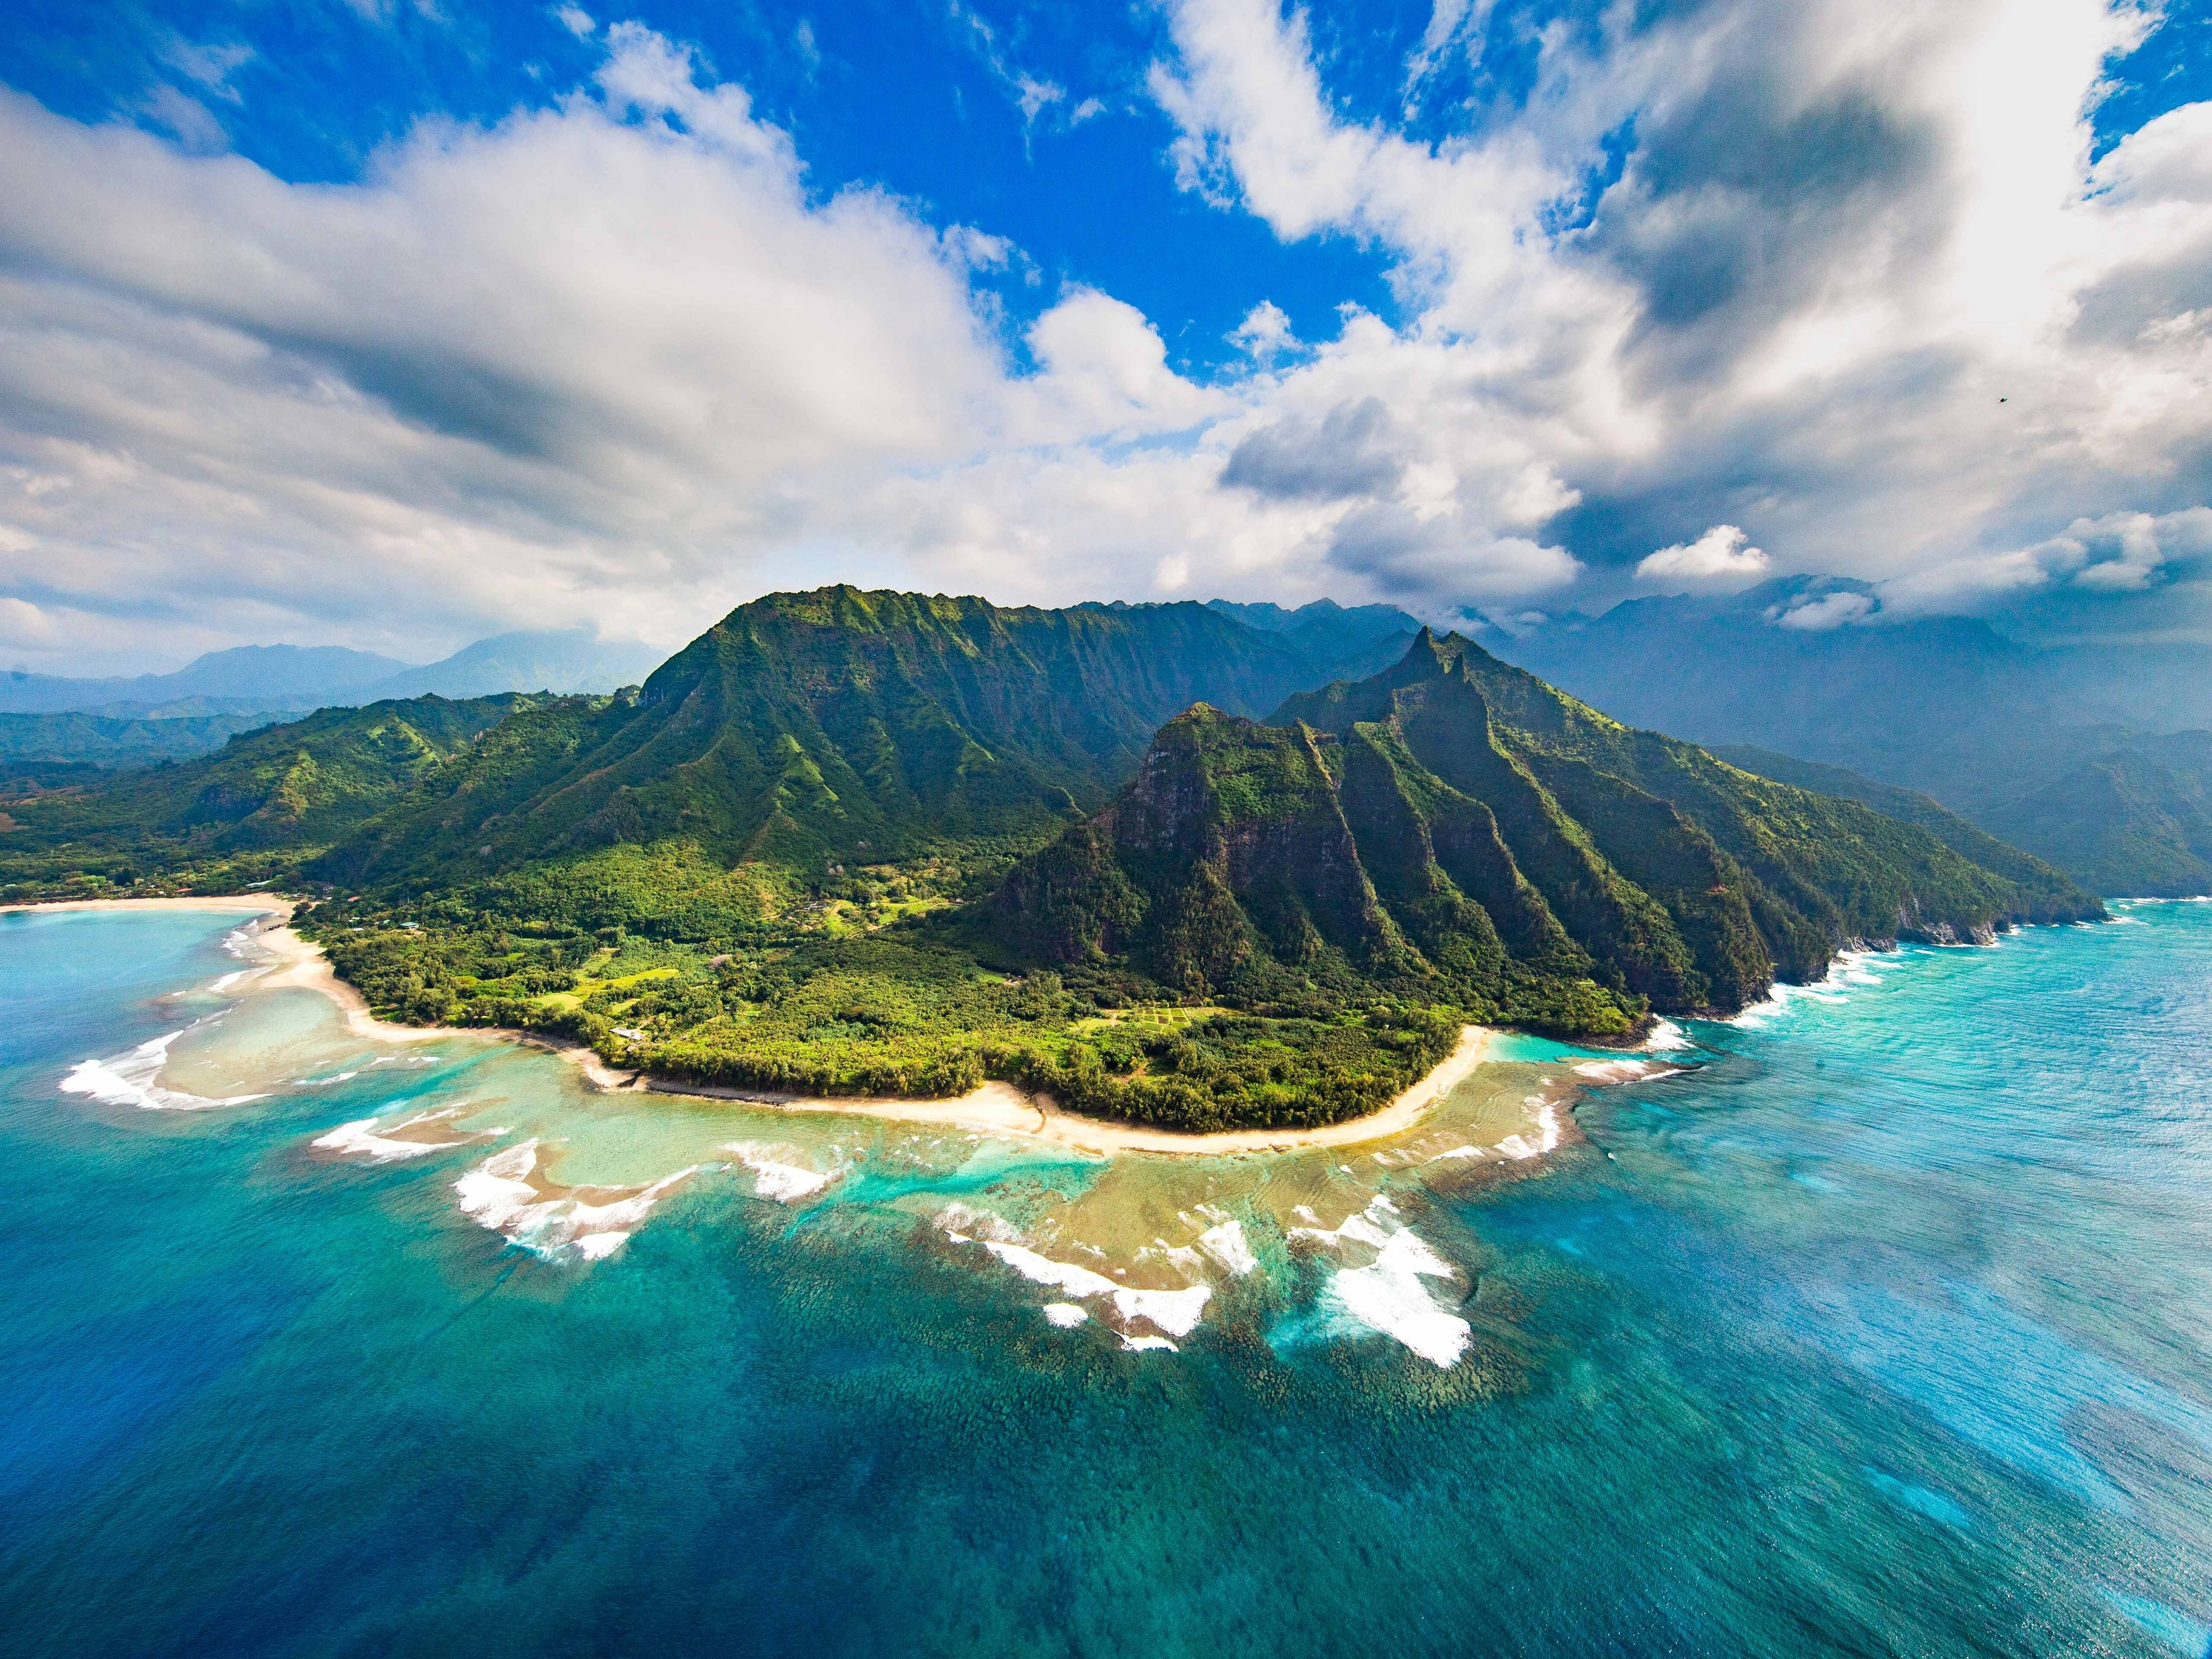 You can score a free one-night hotel stay in Hawaii if vowing to get involved in volunteer work while there